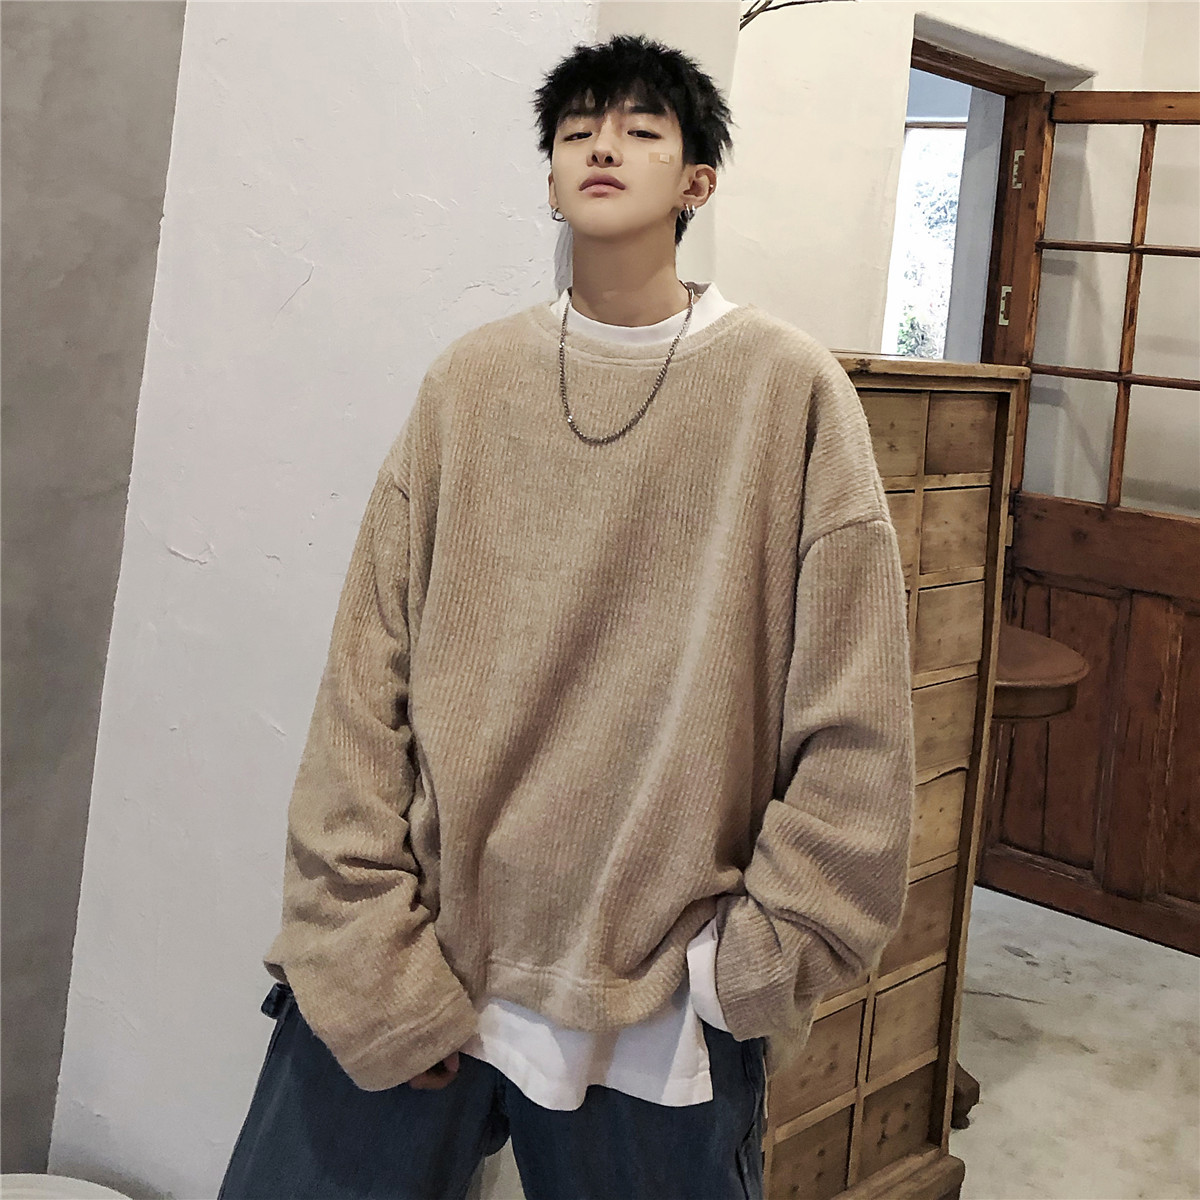 2019 Spring Men's Cotton Loose Clothes Hoodies Pullover High-quality Coats Casual Round Collar Solid Color Sweatshirt Size M-XL